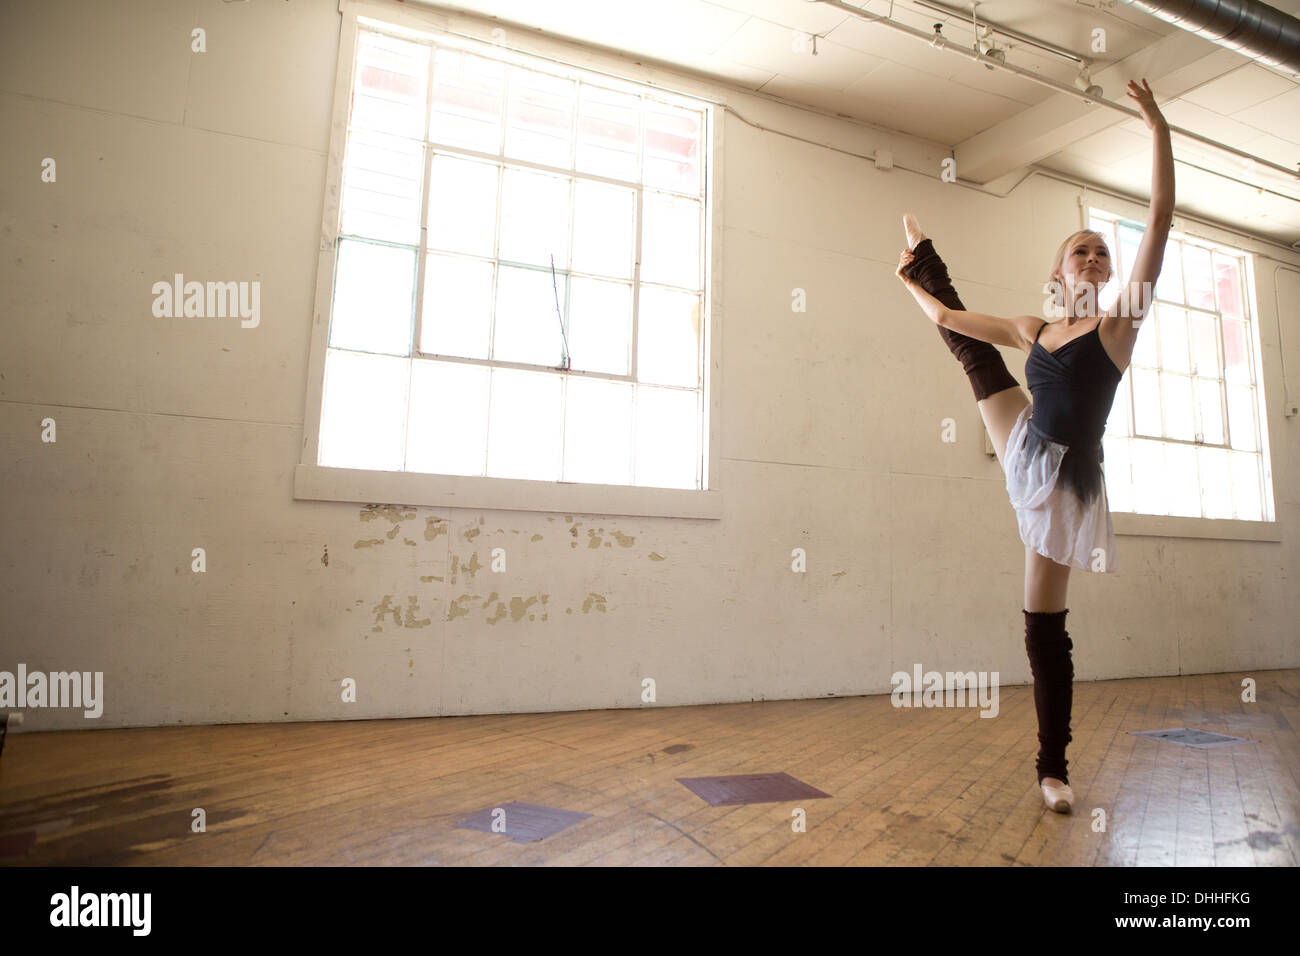 Ballet dancer on one leg in studio - Stock Image